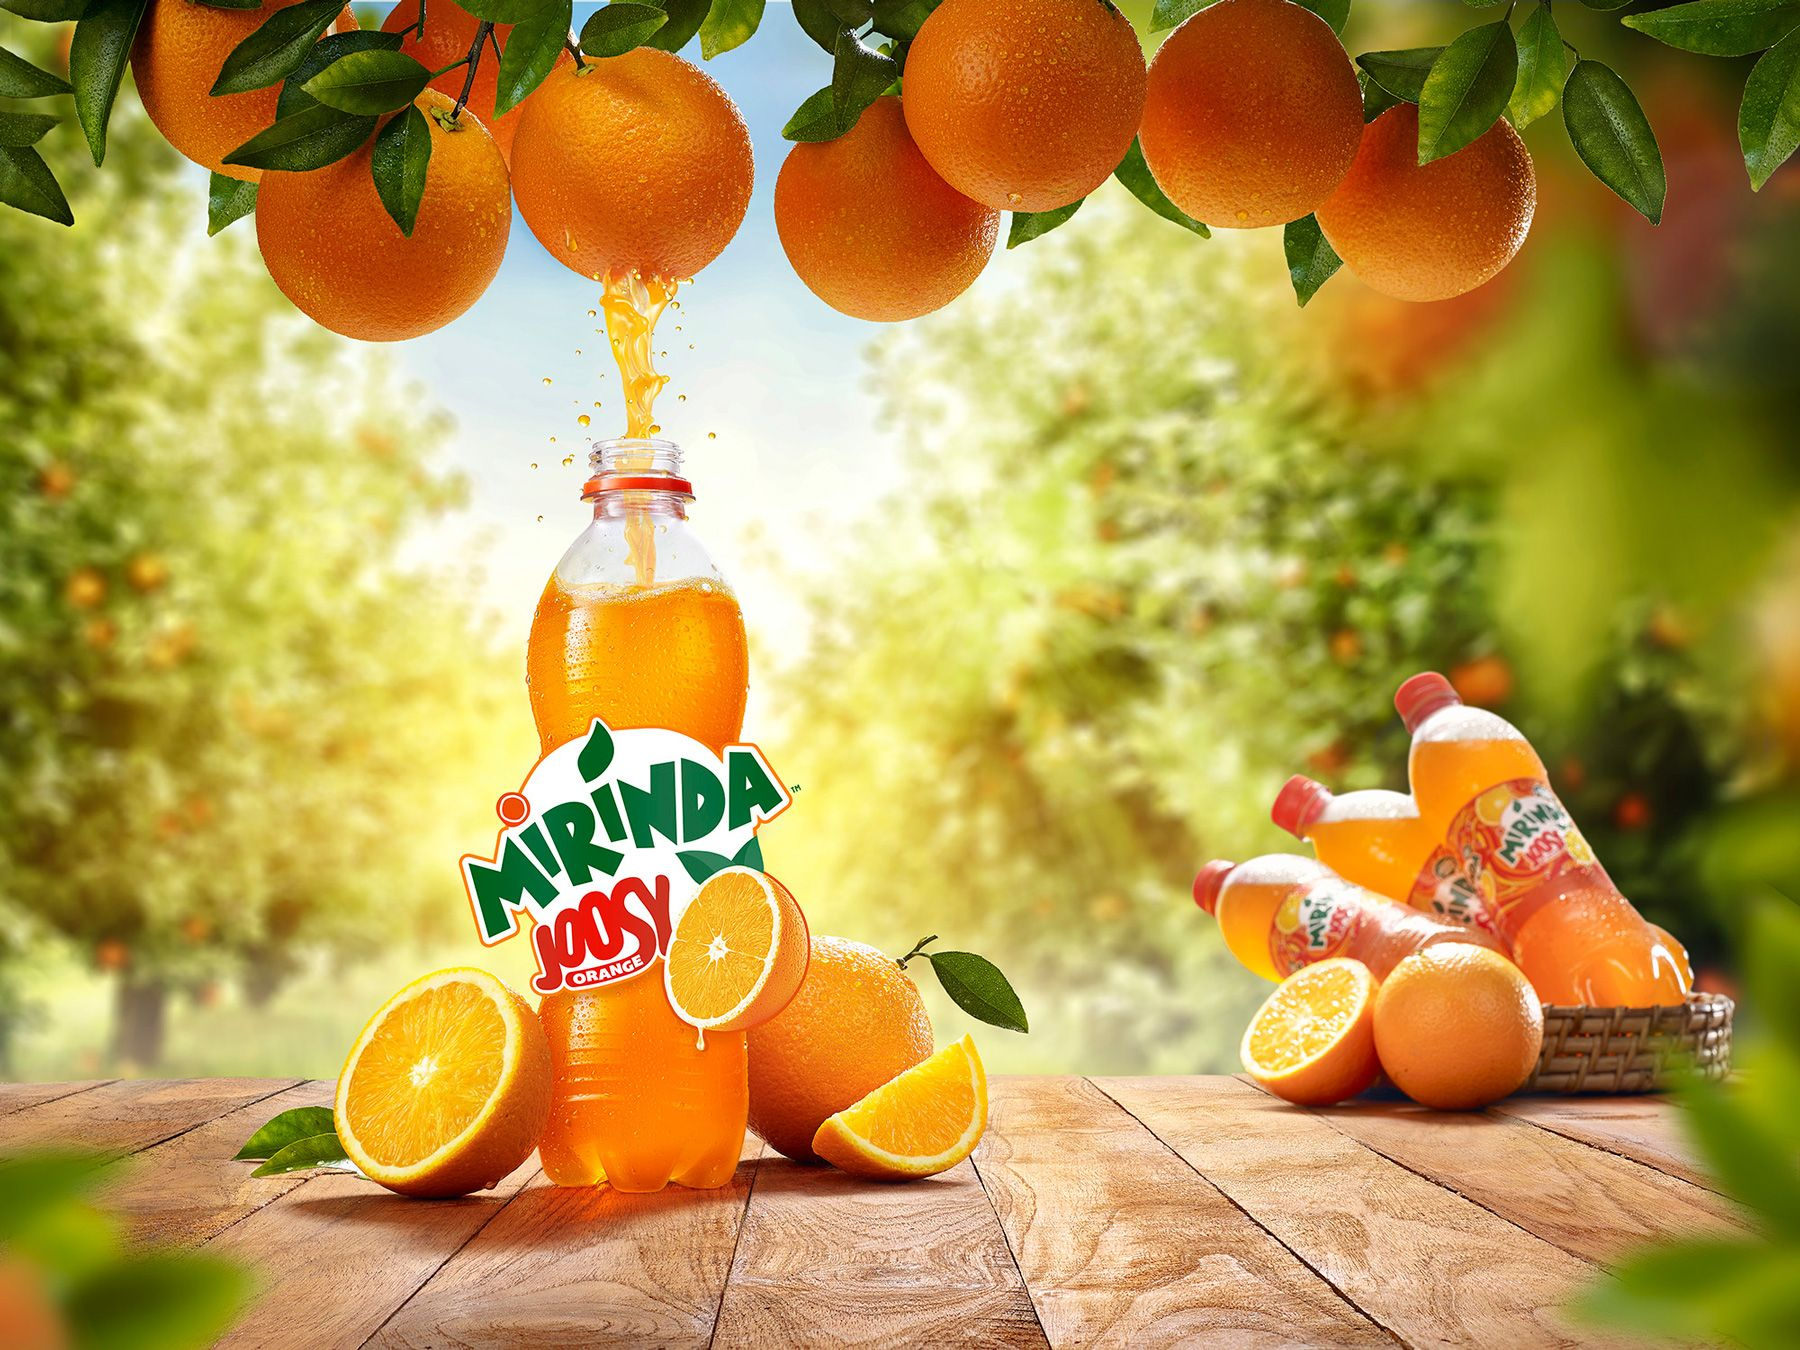 Mirinda Joosy Orange on Behance | Drinks packaging design, Food ...